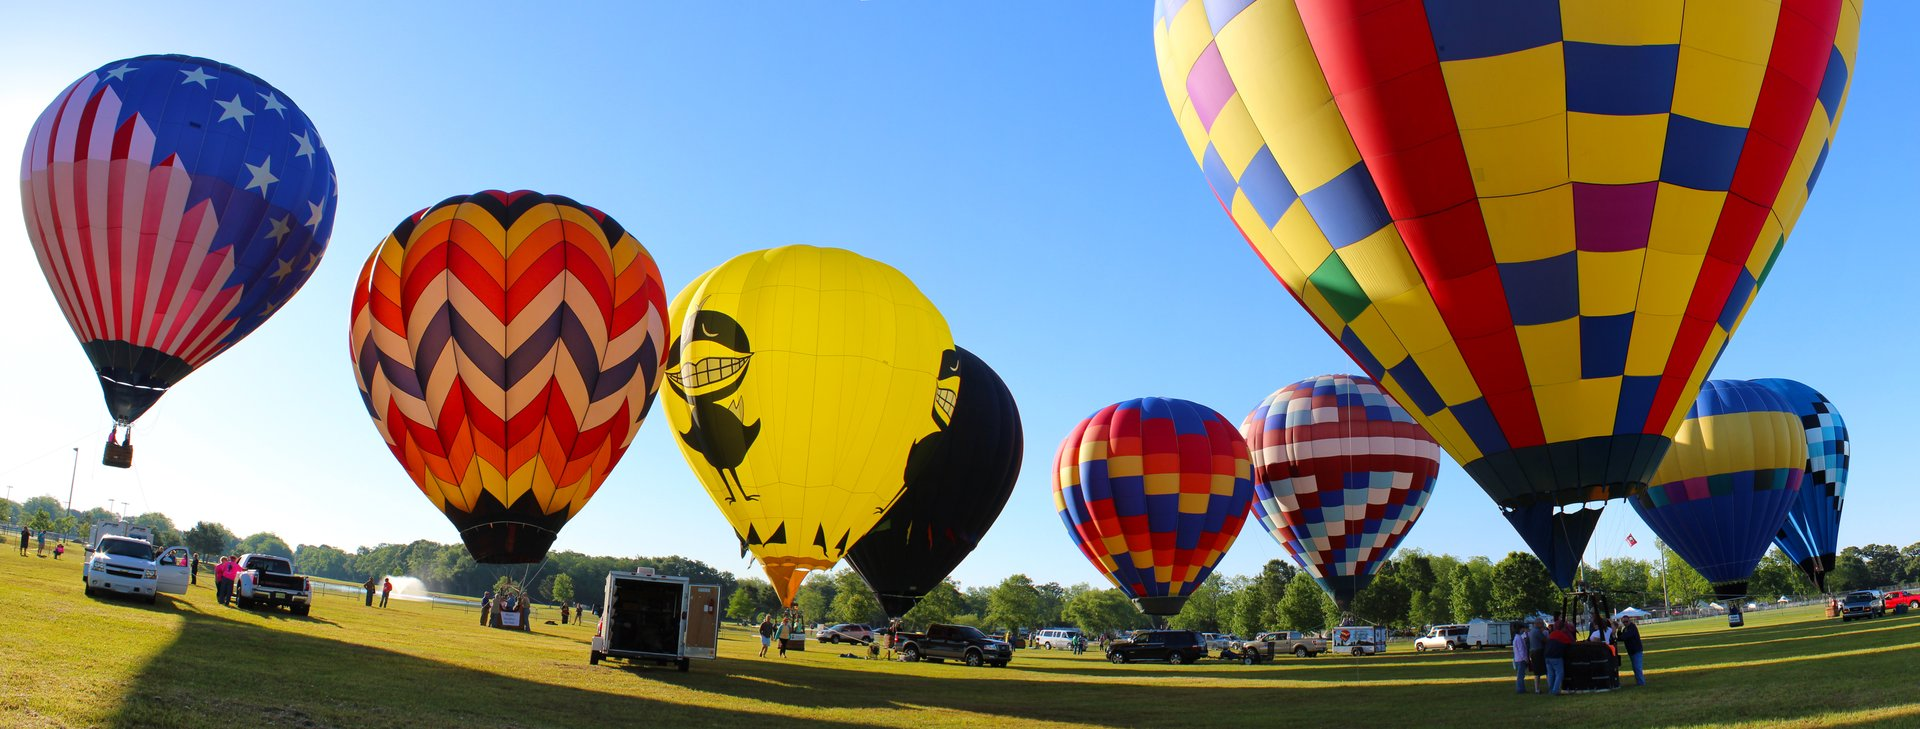 Balloon Festival 2020 Nj.Gulf Coast Hot Air Balloon Festival 2020 In Alabama Dates